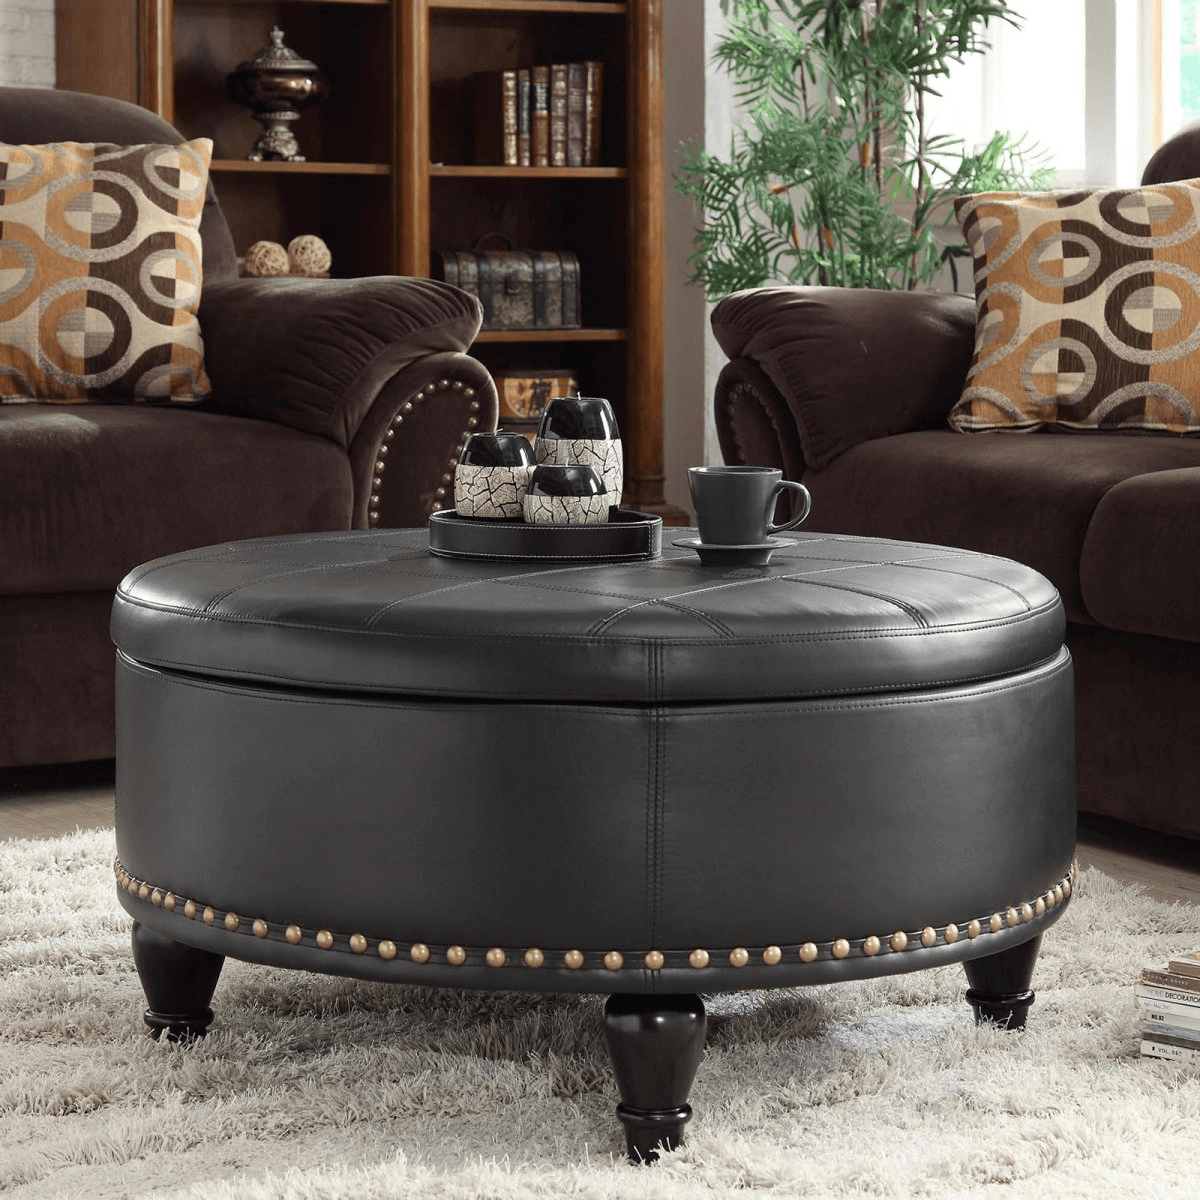 Simple ceramics and unique glassware for leather cover black round coffee table living room decor ideas